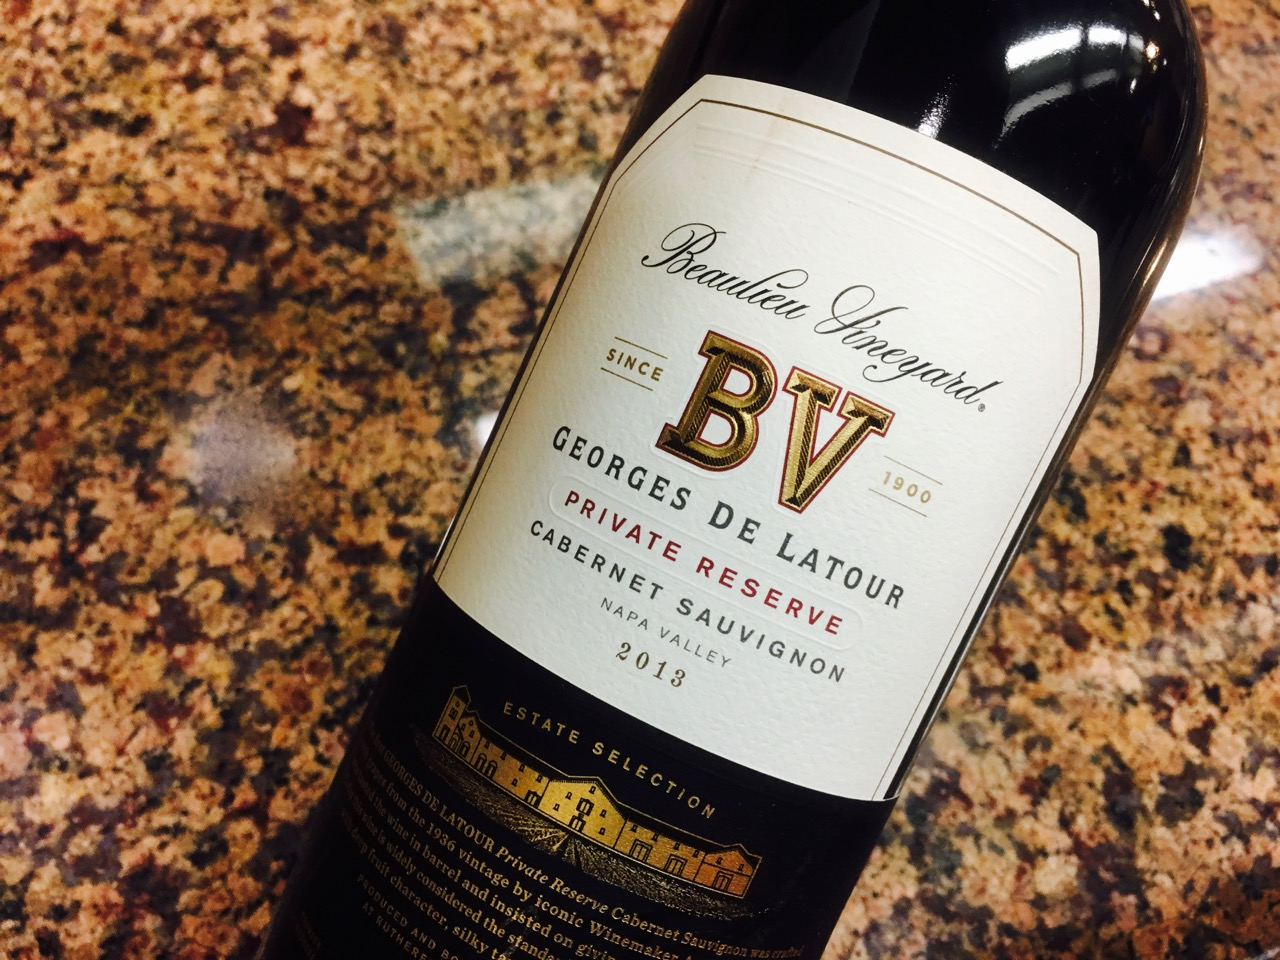 2013 Beaulieu Vineyard Cabernet Sauvignon Georges de Latour Private Reserve Napa Valley